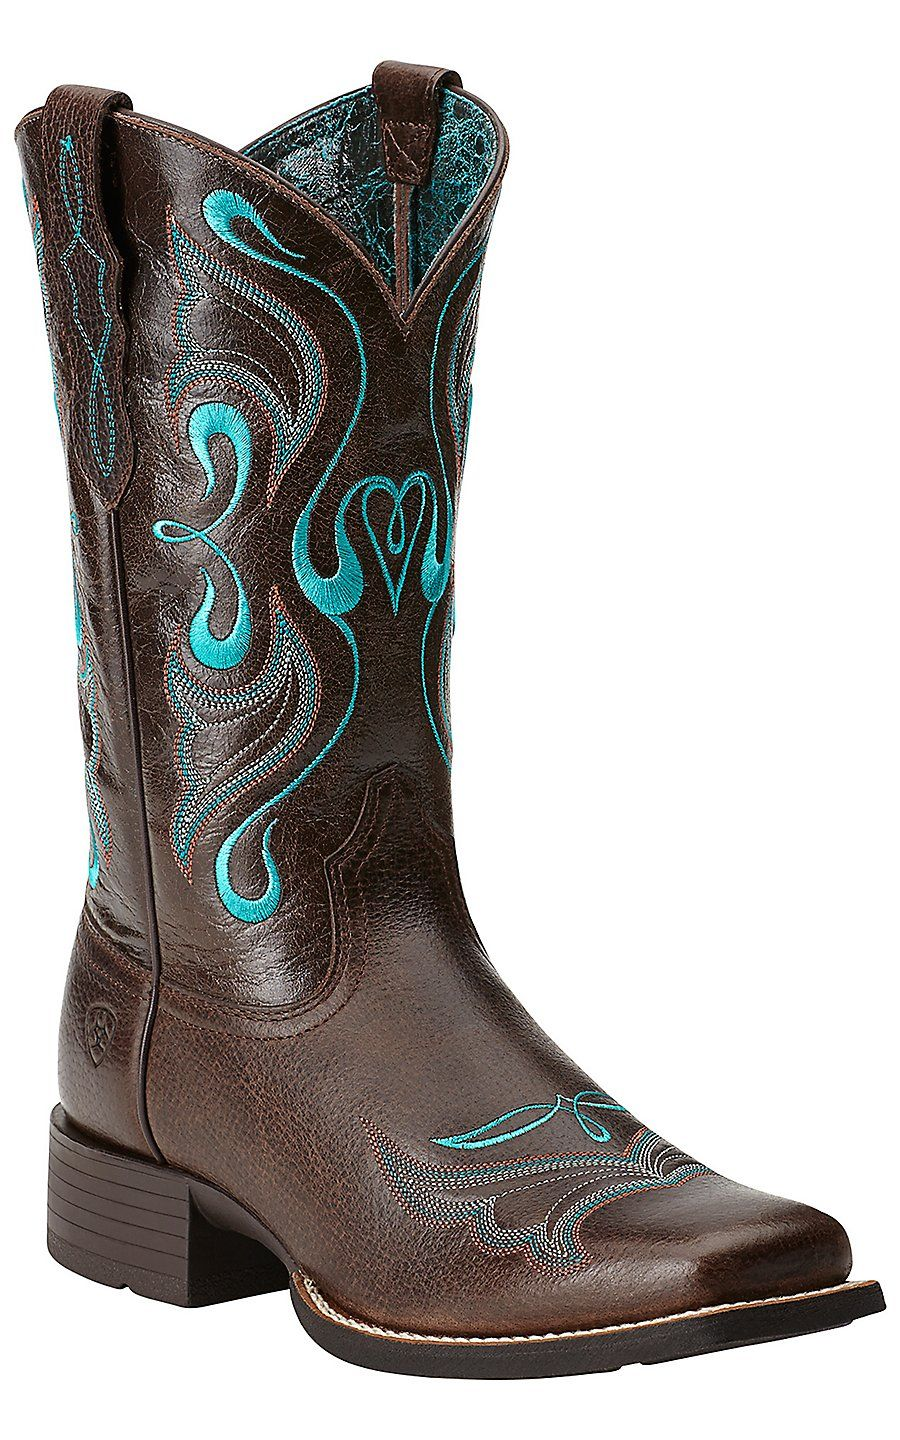 Amazon.com: Ariat Women's Catalina Cowgirl Boot Square Toe: Shoes ...